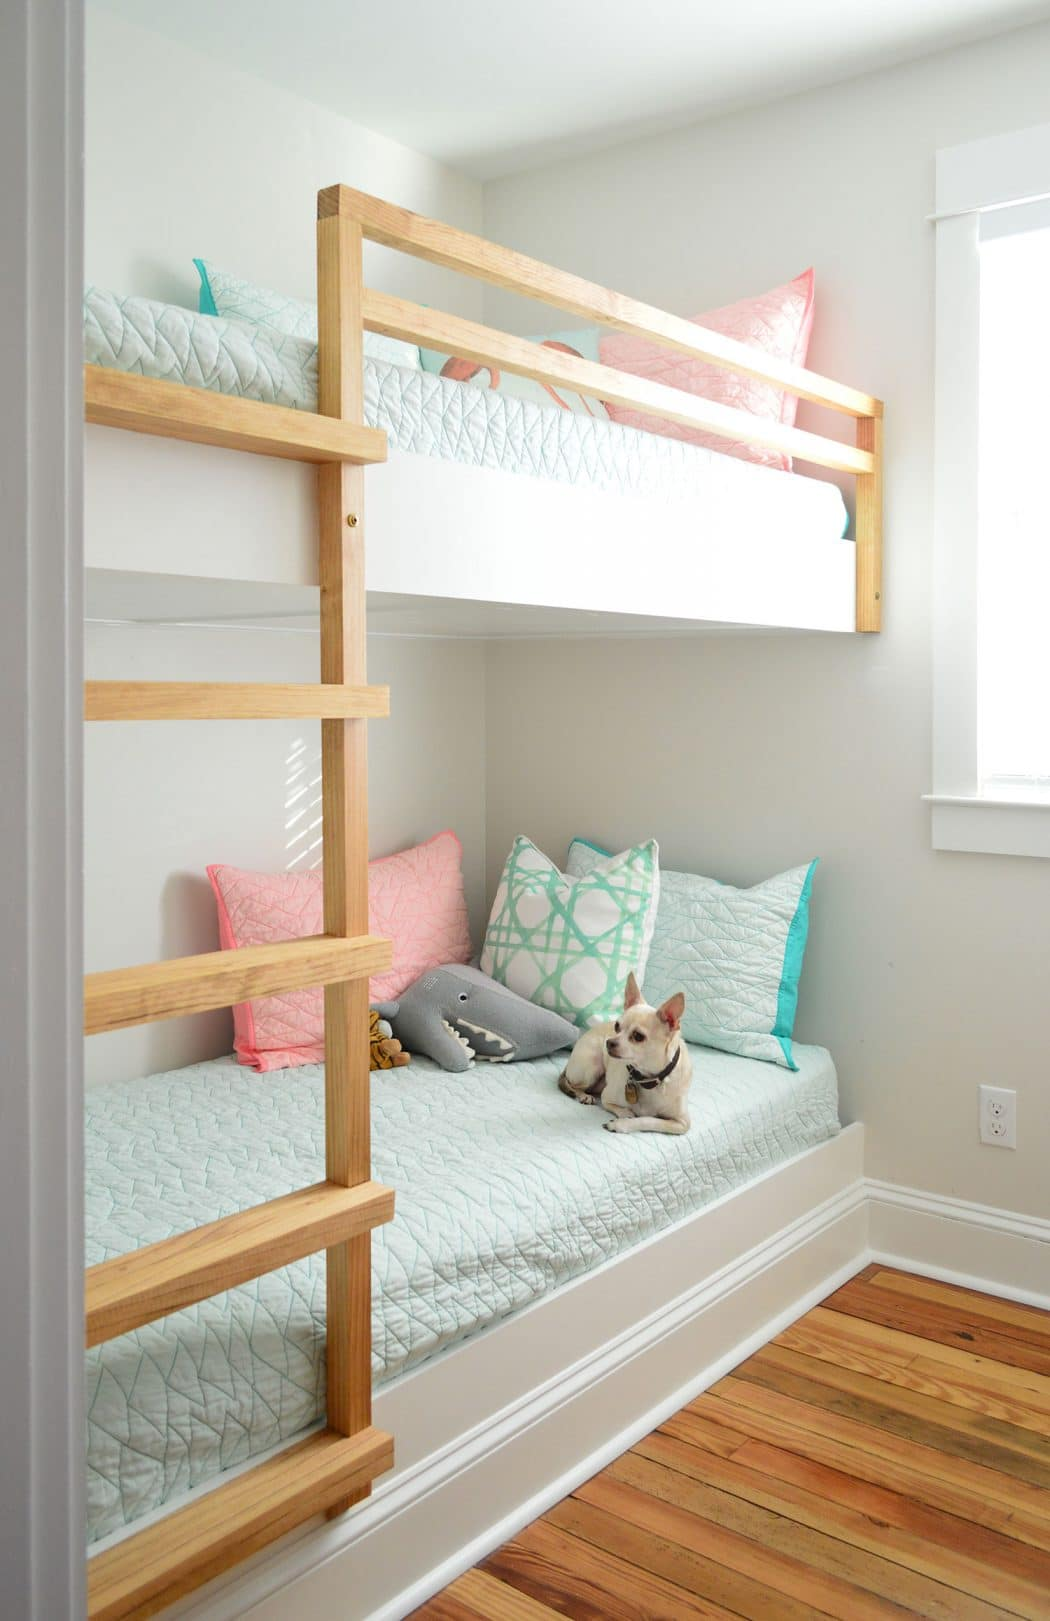 how to make diy built in bunk beds young house love. Black Bedroom Furniture Sets. Home Design Ideas